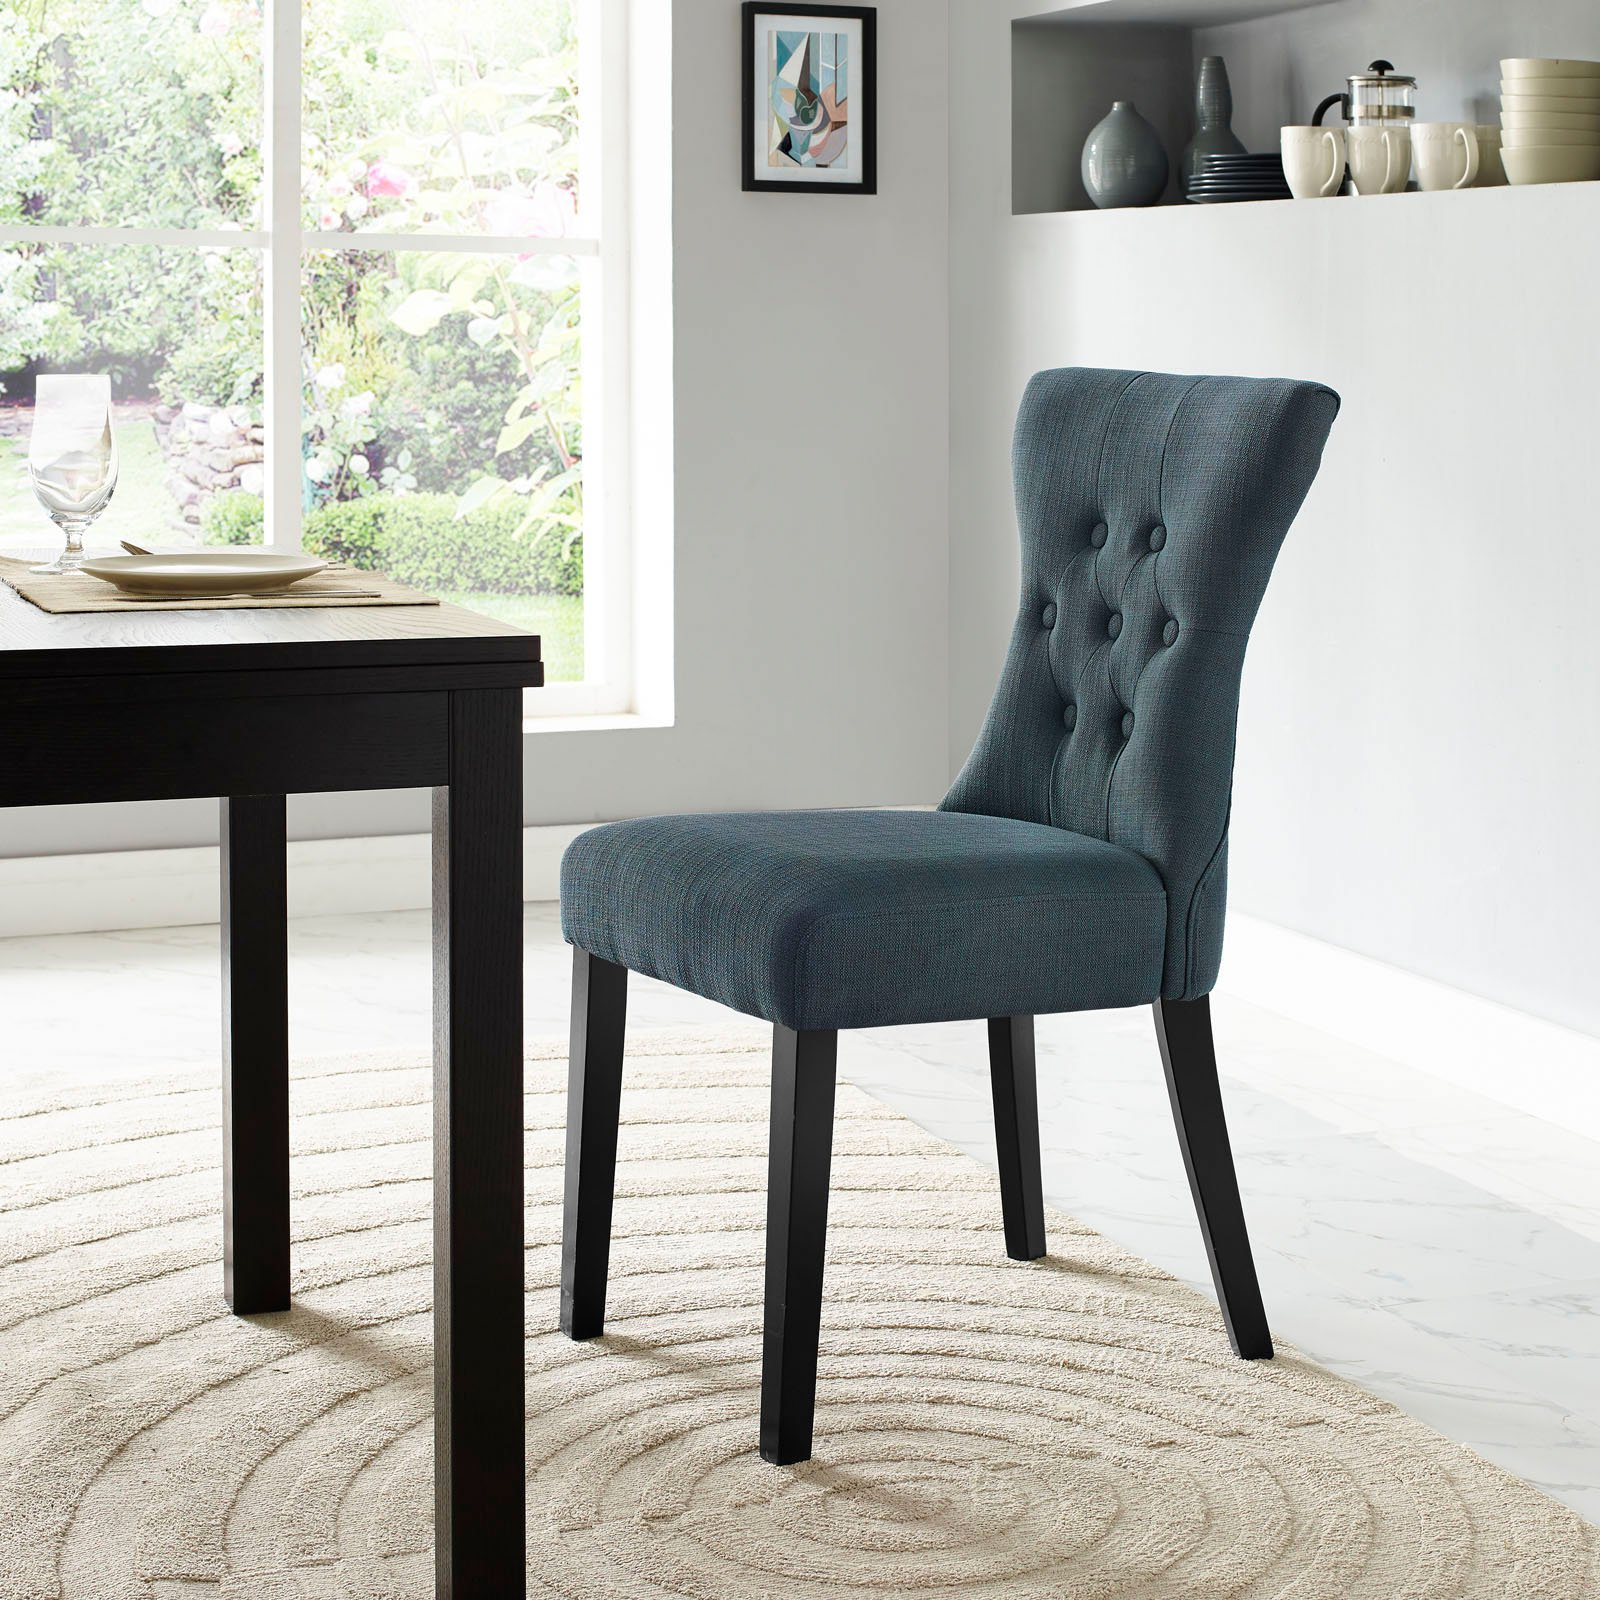 Modway Silhouette Upholstered Dining Side Chair, Multiple Colors